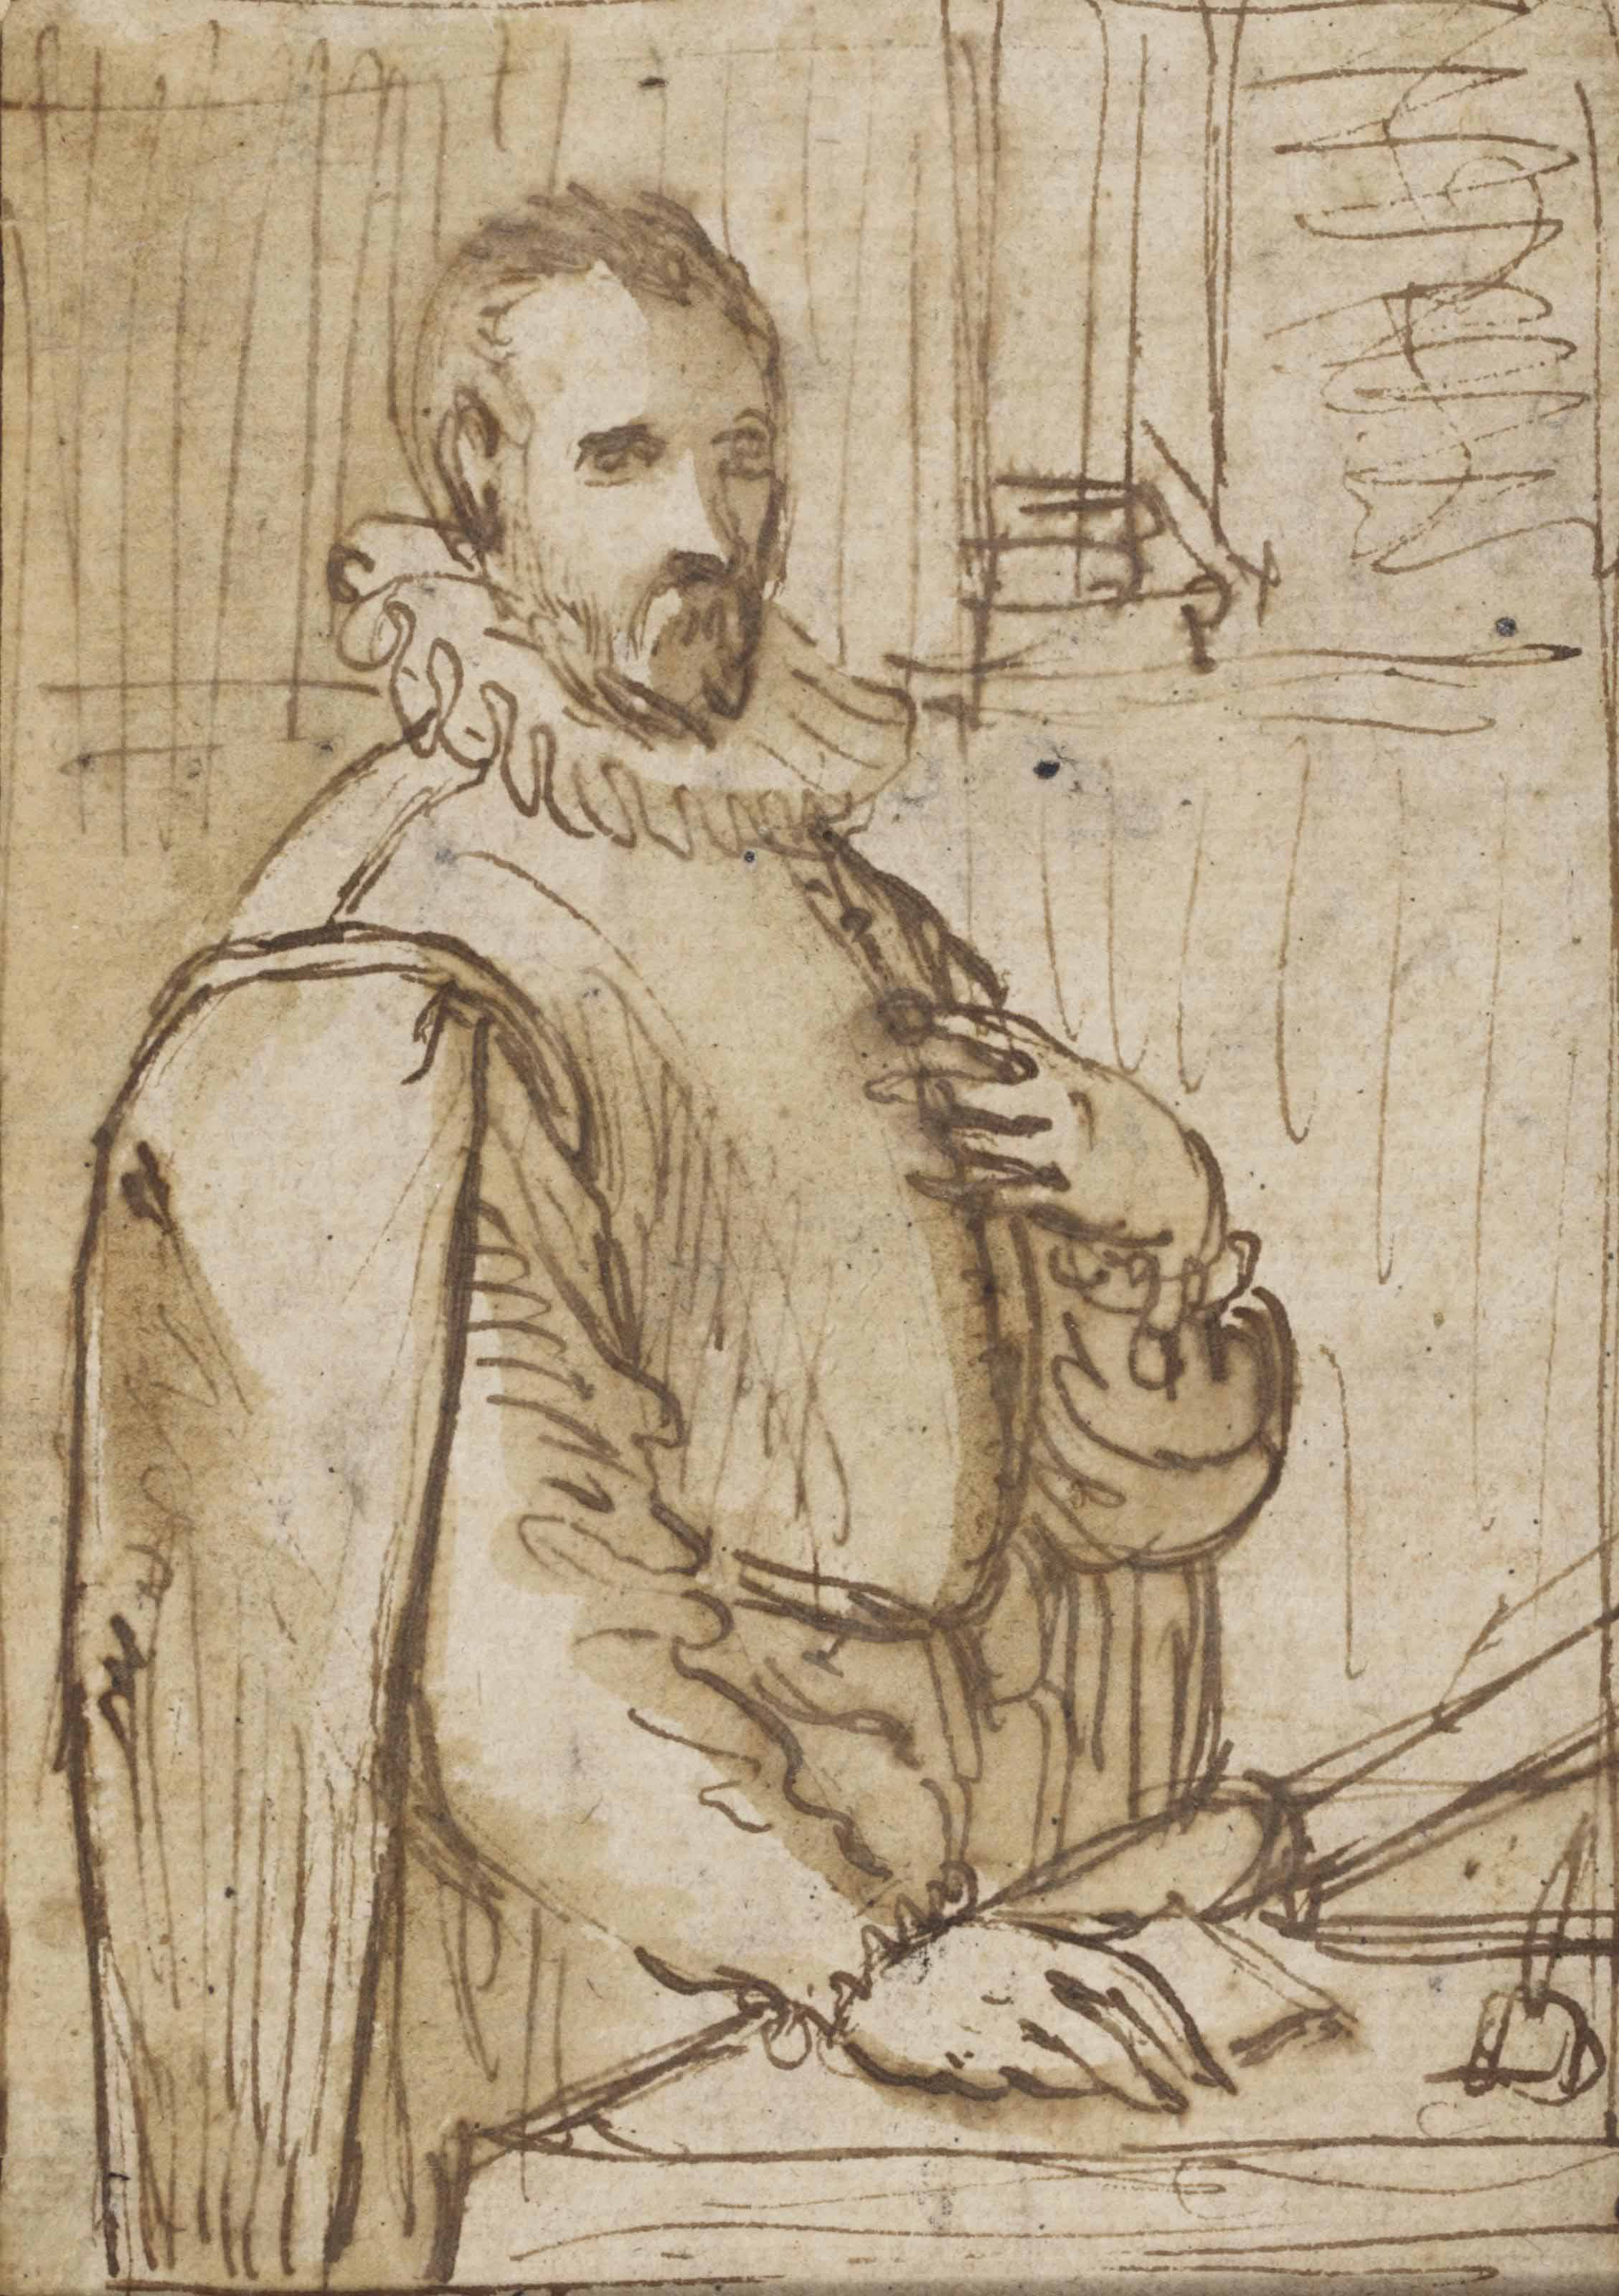 Portrait of a man standing at a desk